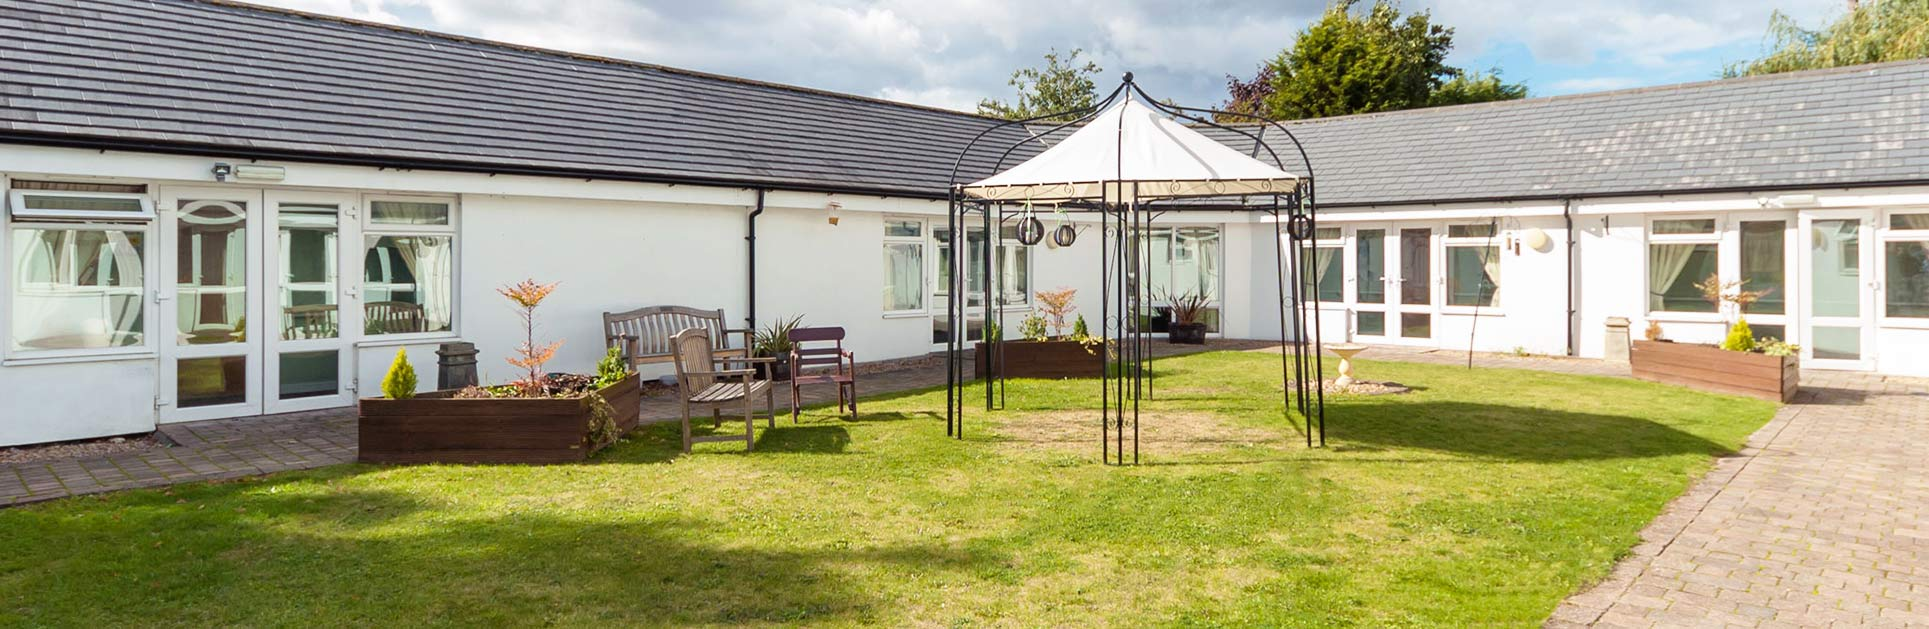 Yaxley House Residential Care Home